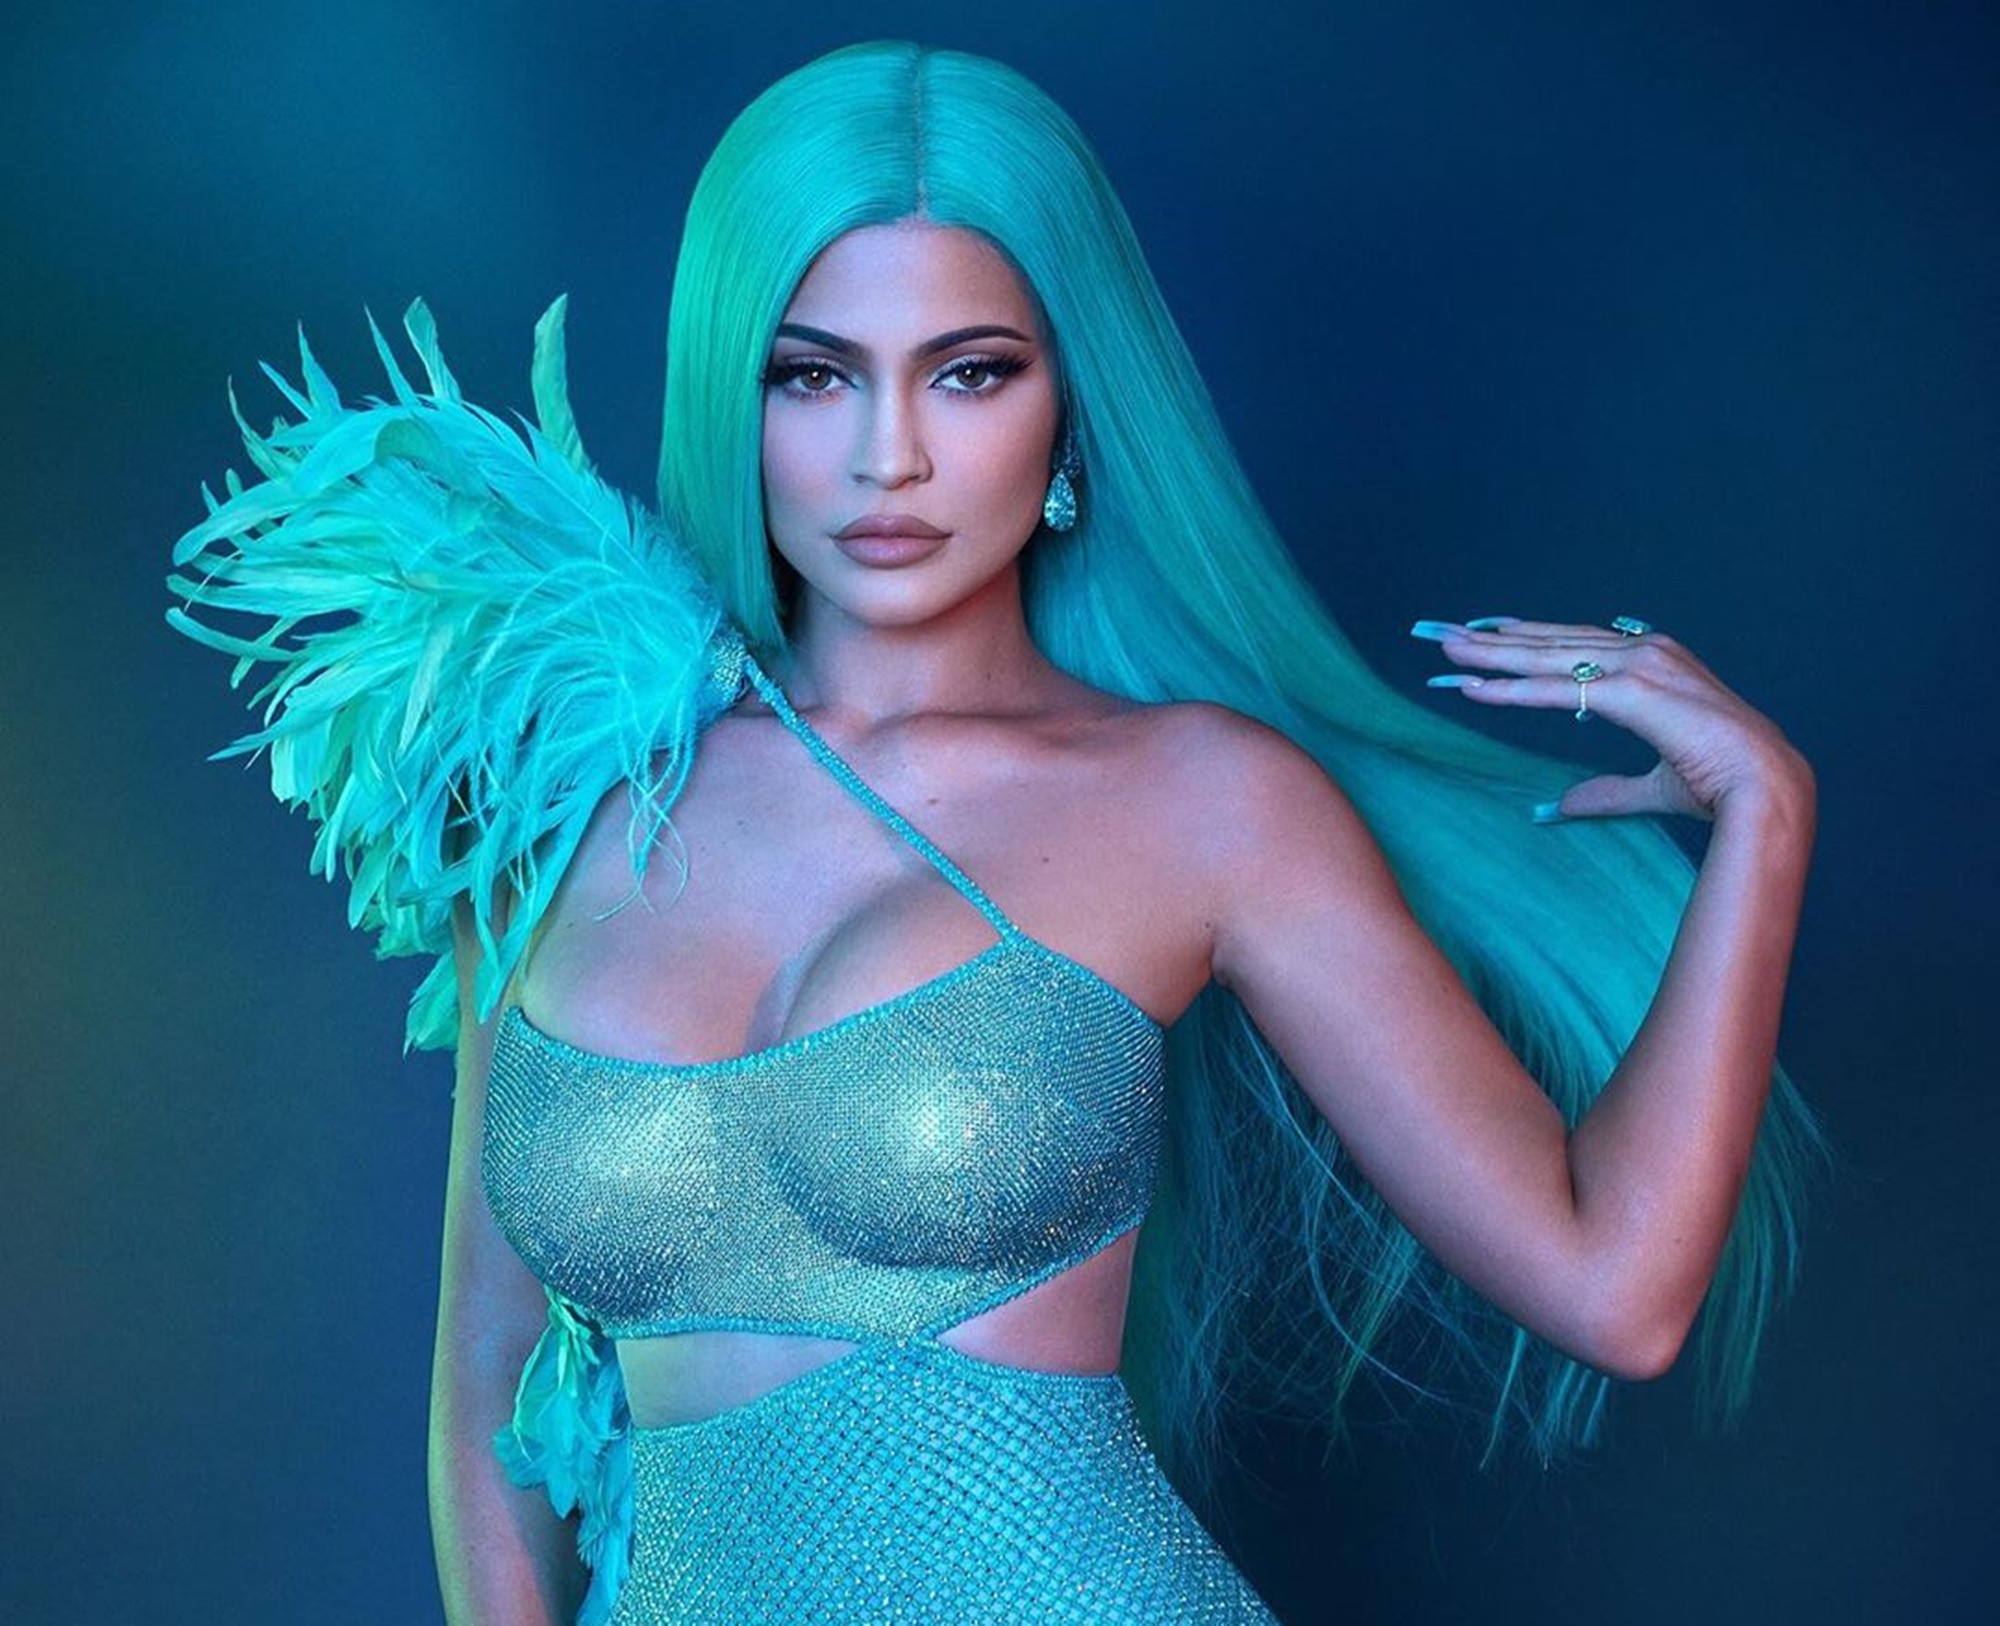 kylie-jenner-is-not-concerned-with-sister-kendalls-anxiety-attack-in-viral-video-as-model-looks-to-build-her-own-empire